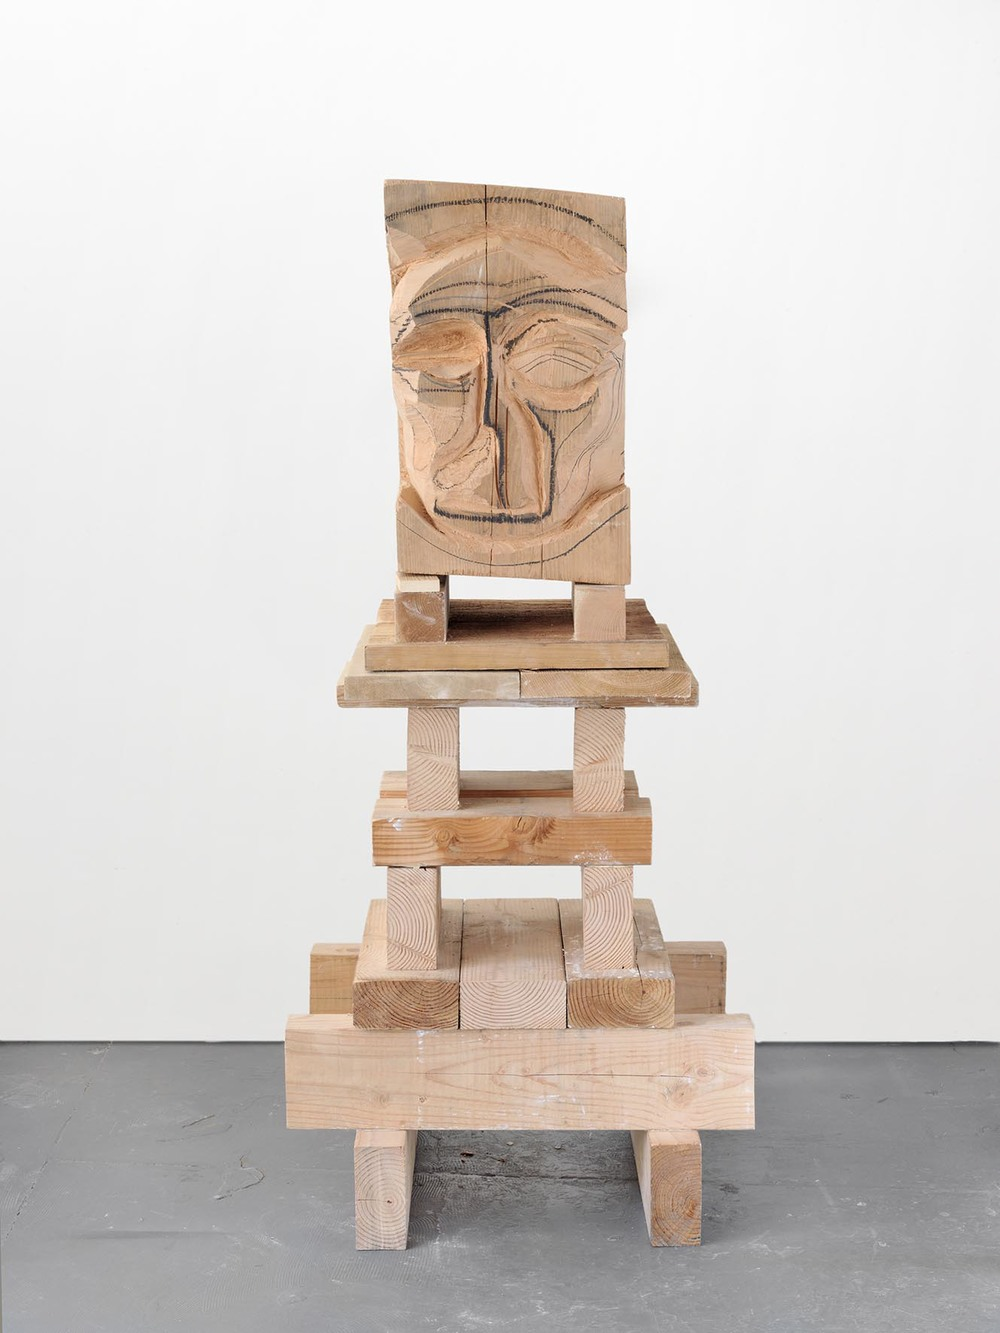 Carving 2008 california redwood, wood, graphite, oil stick 190.5 x 73.7 x 83.8 cm